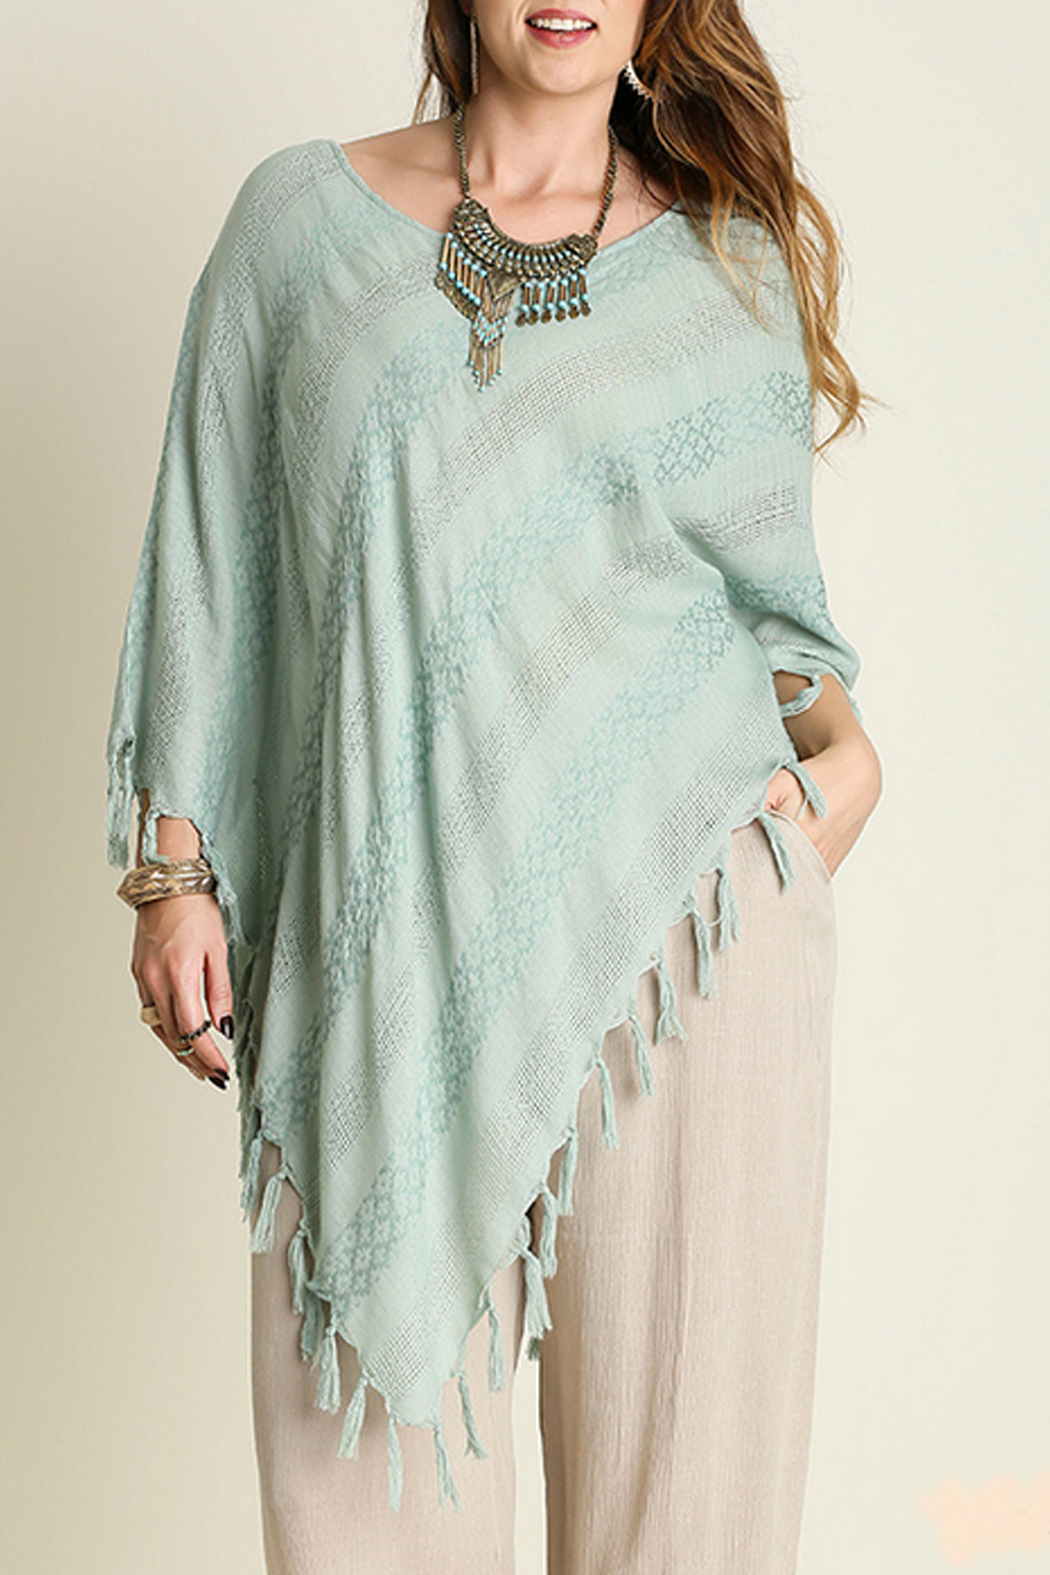 Umgee USA Asymmetrical Fringe Top - Main Image